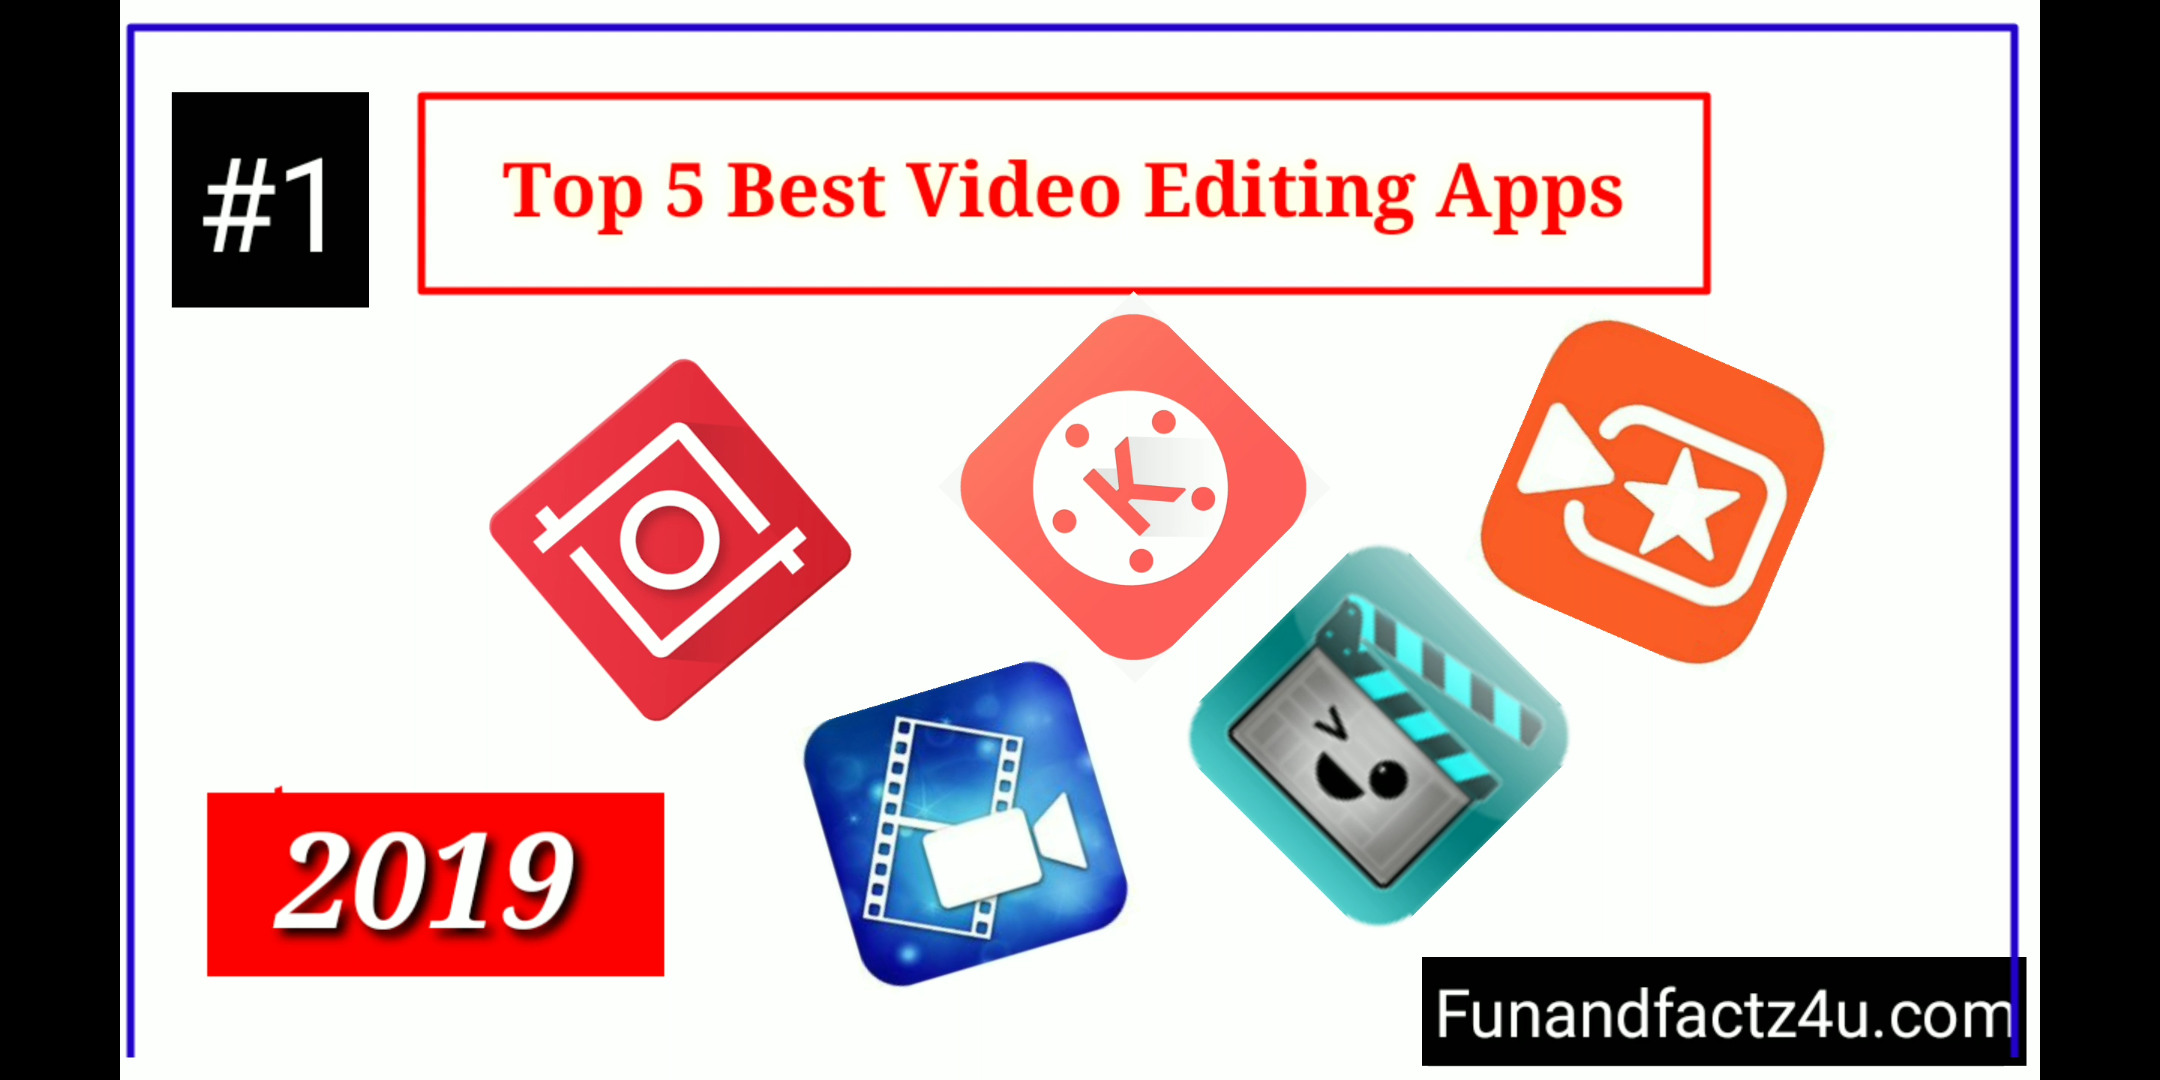 Top 5 Best Video Editing Mobile Apps in 2019